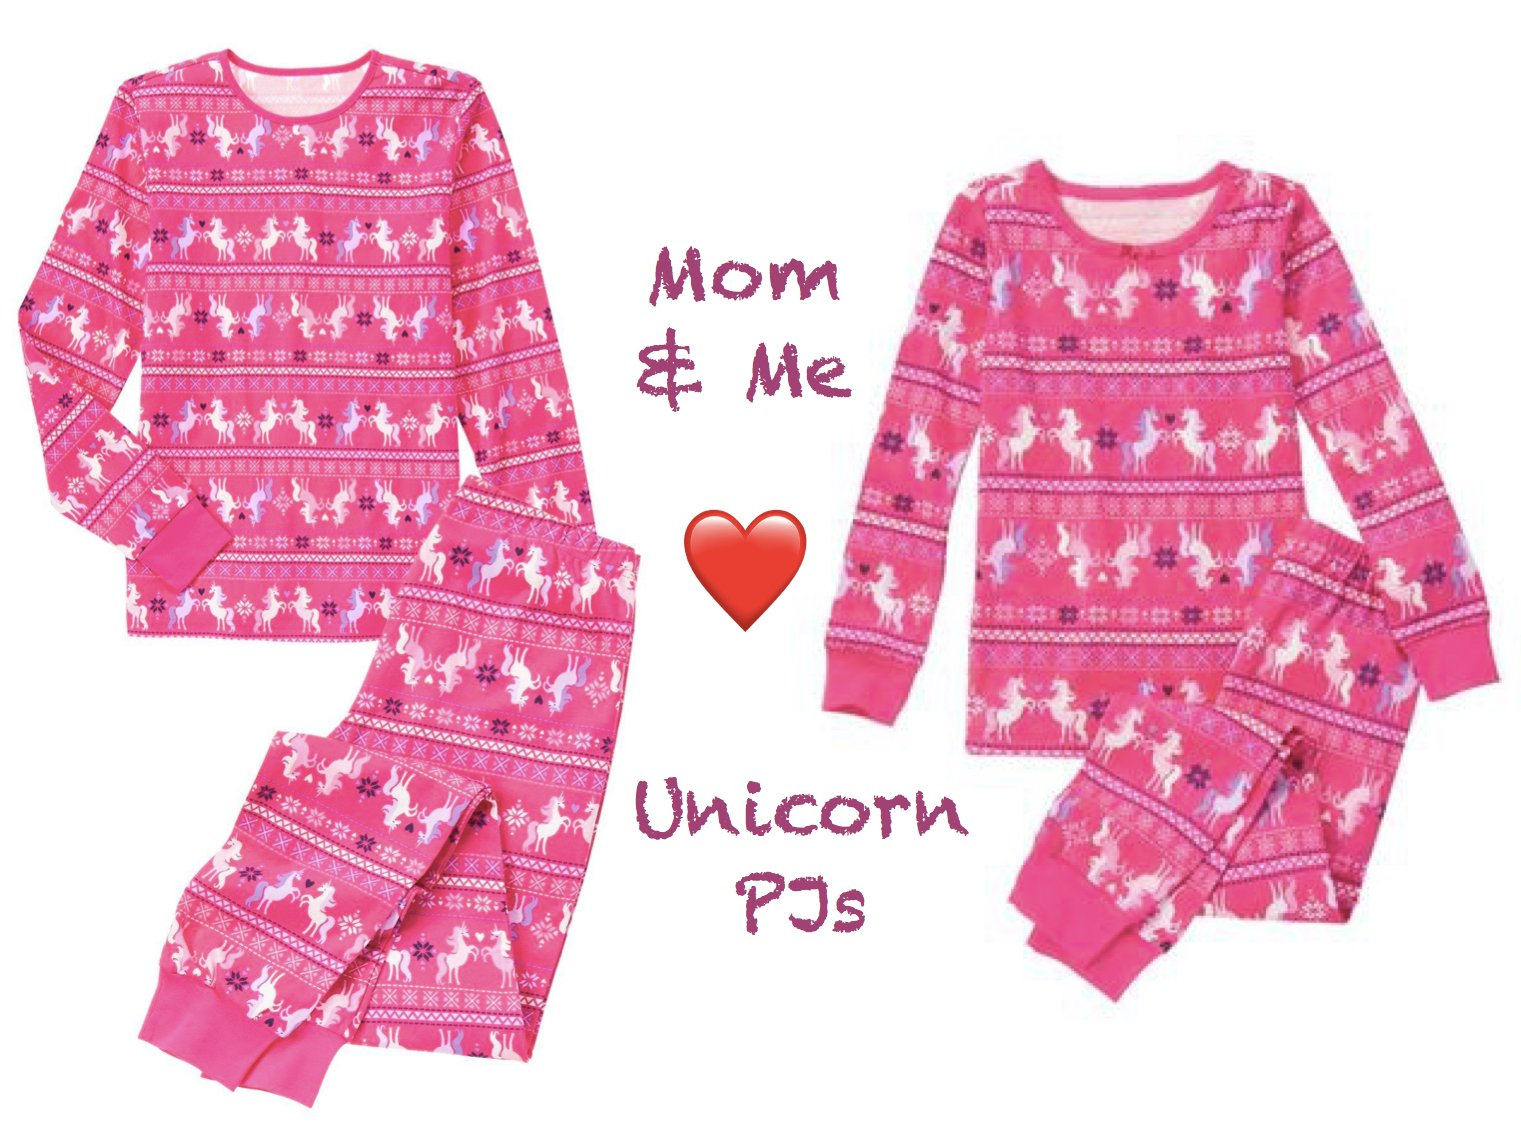 Mom and Me Love Unicorn PJs